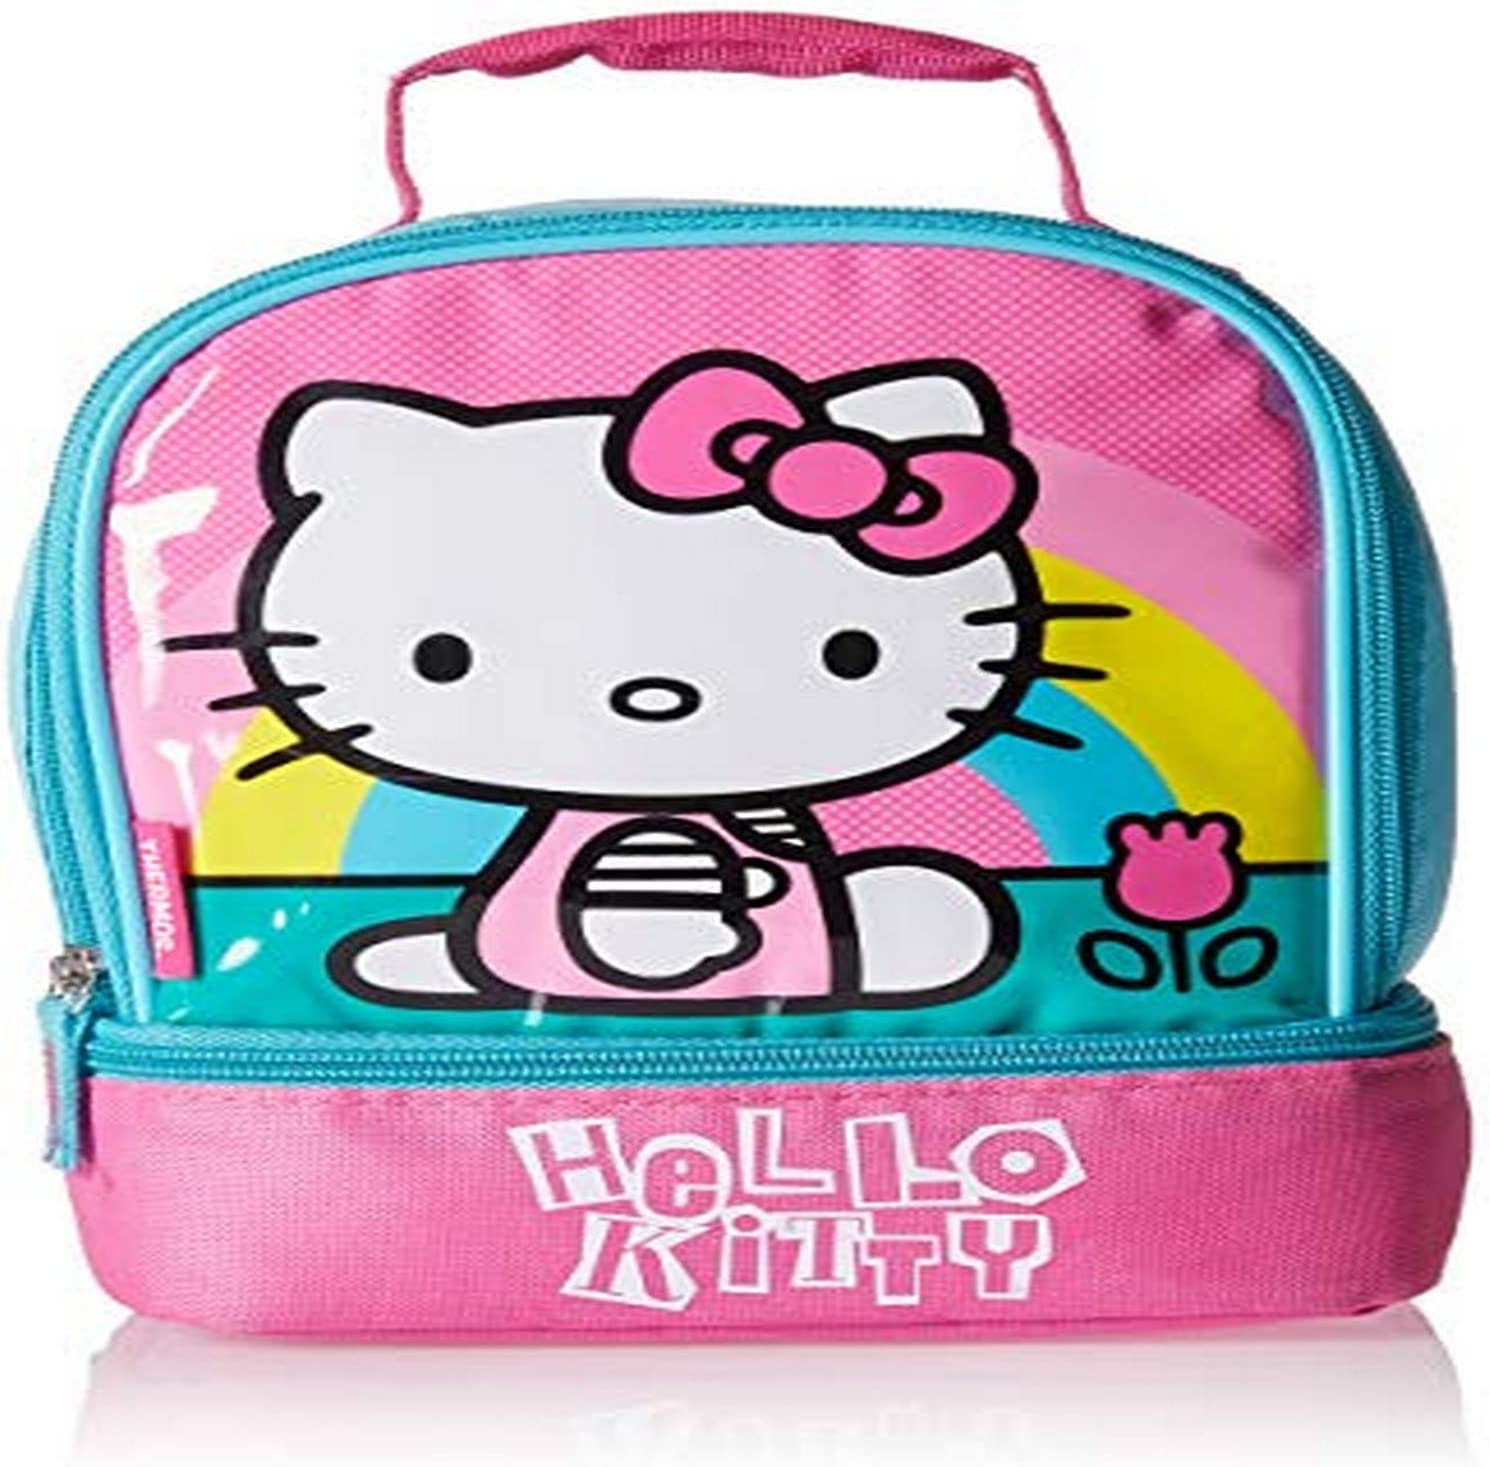 Thermos Kids Lunch Bag Insulated Lunch Bag For Kids School Hello Kitty Dual Compartment Lunch Kit